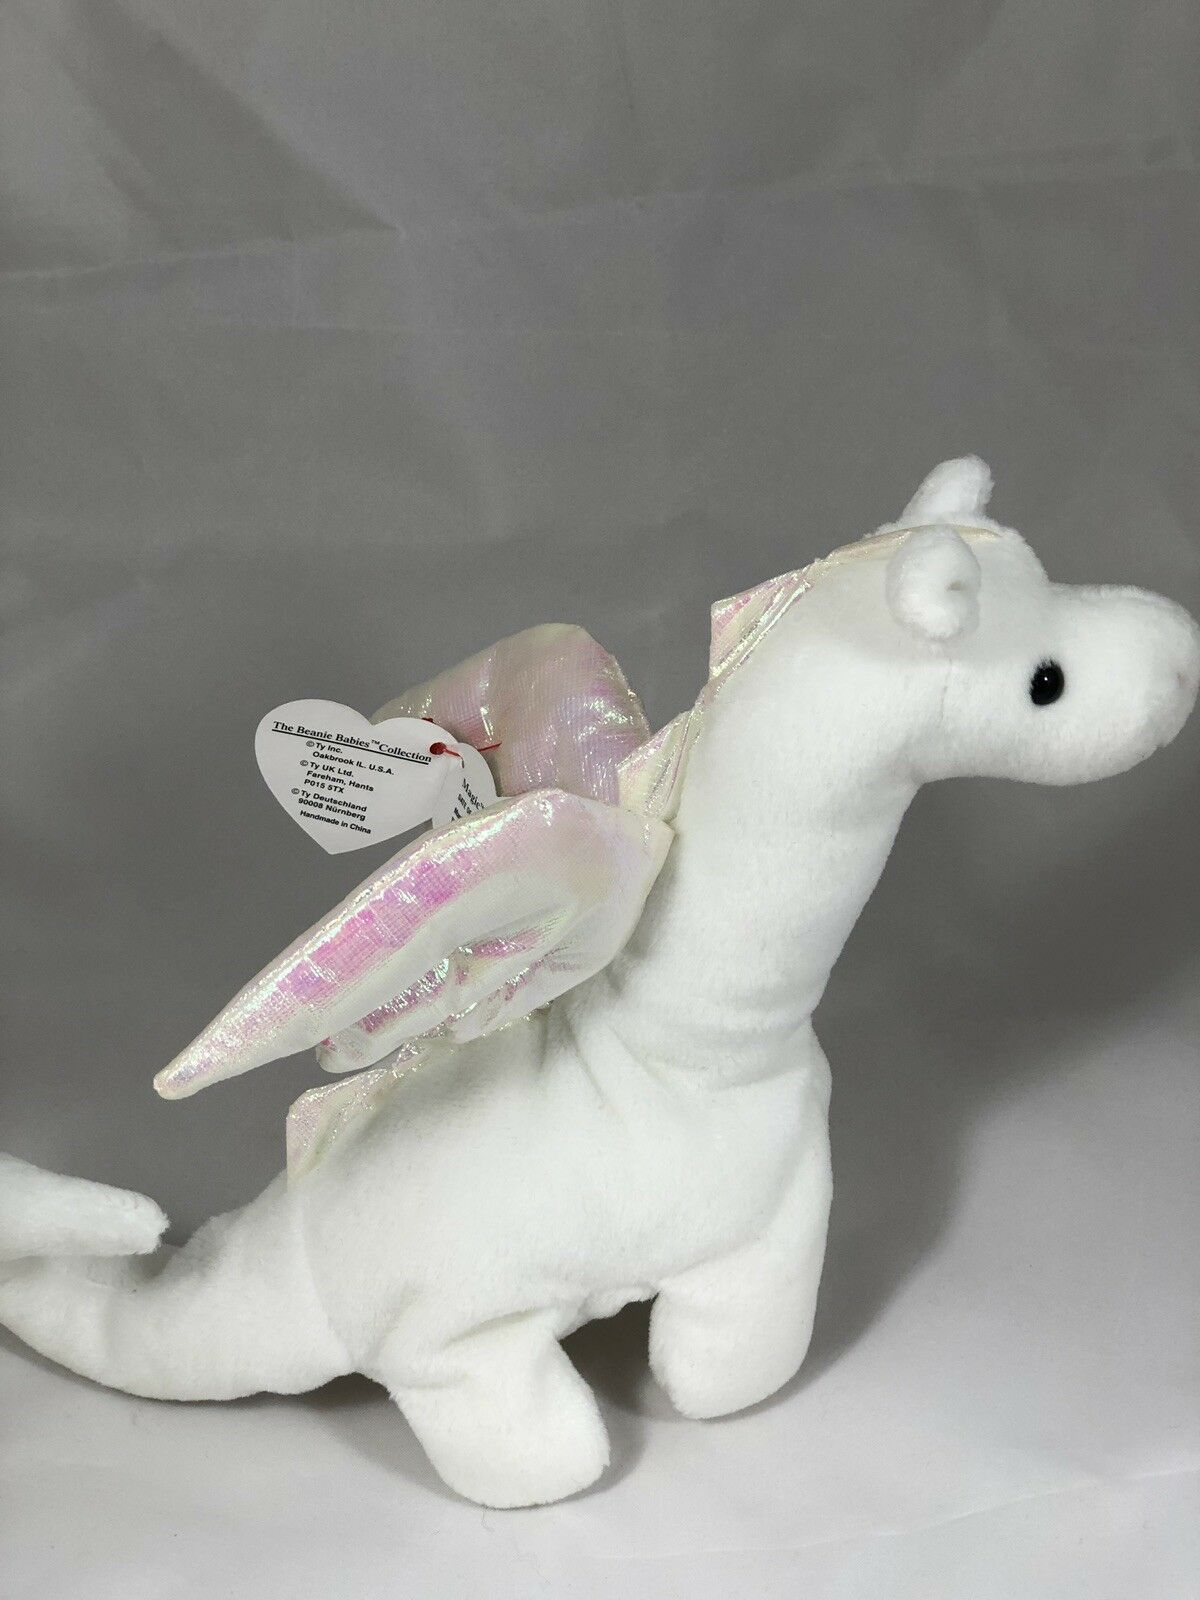 3c206c6deeb TY BEANIE EDITION BABY 1ST EDITION BEANIE 1995 VERY RARE MAGIC THE DRAGON  With ERRORS.